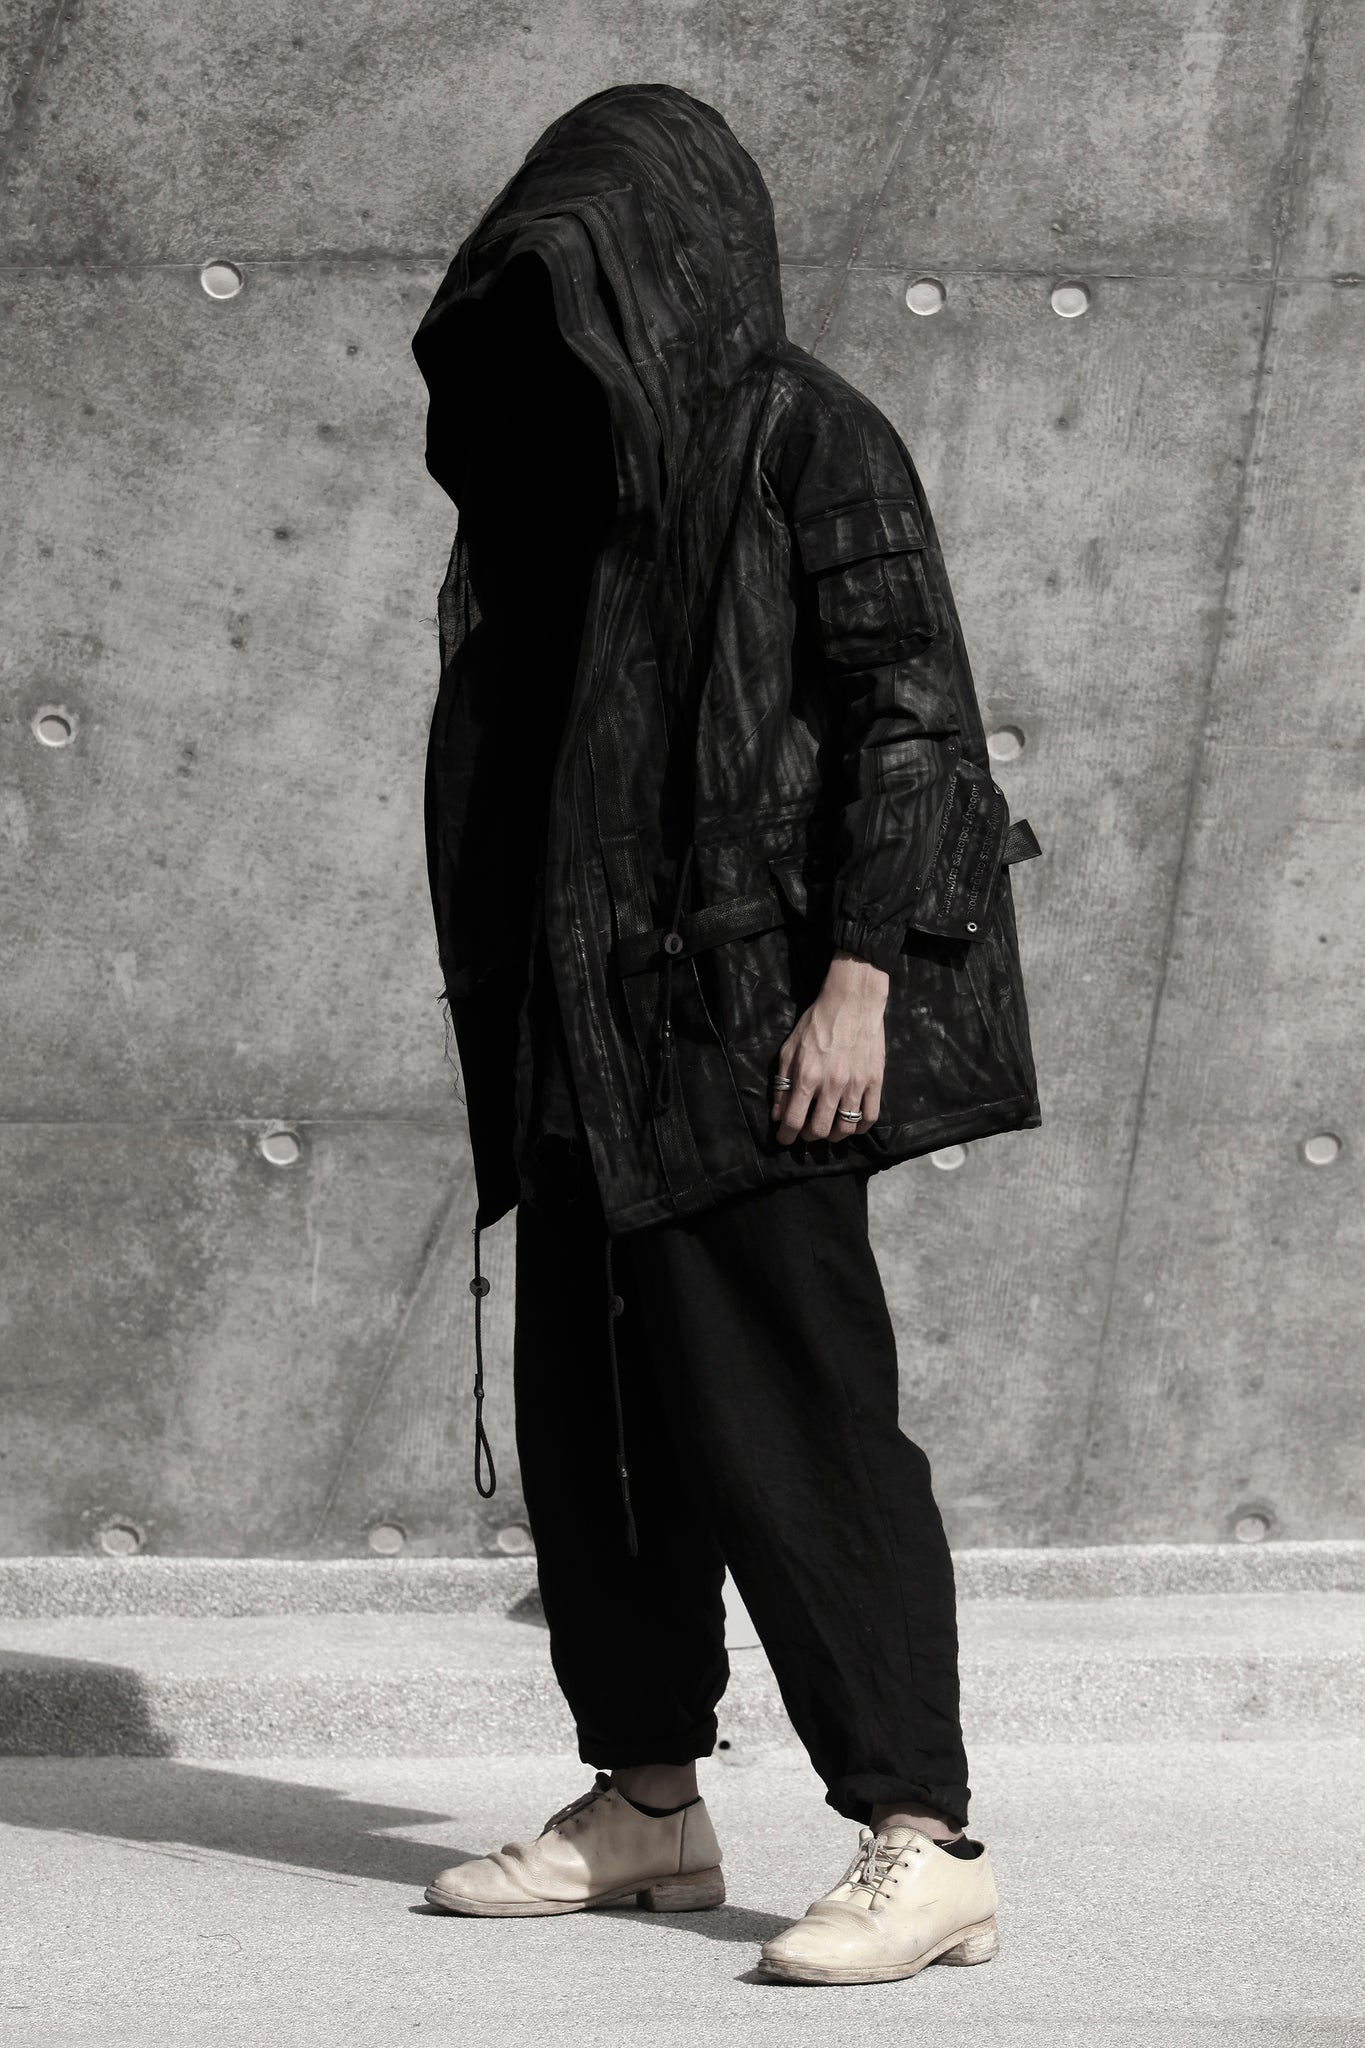 REO MA・Style Number: RM-17S-EP01WAXED ・Project: EXPLORER ・Description: WAXED EXPLORER PARKA ・Material: 100% COTTON | HAND WAXED ・Size: S/M/L ・Colour: BLACK